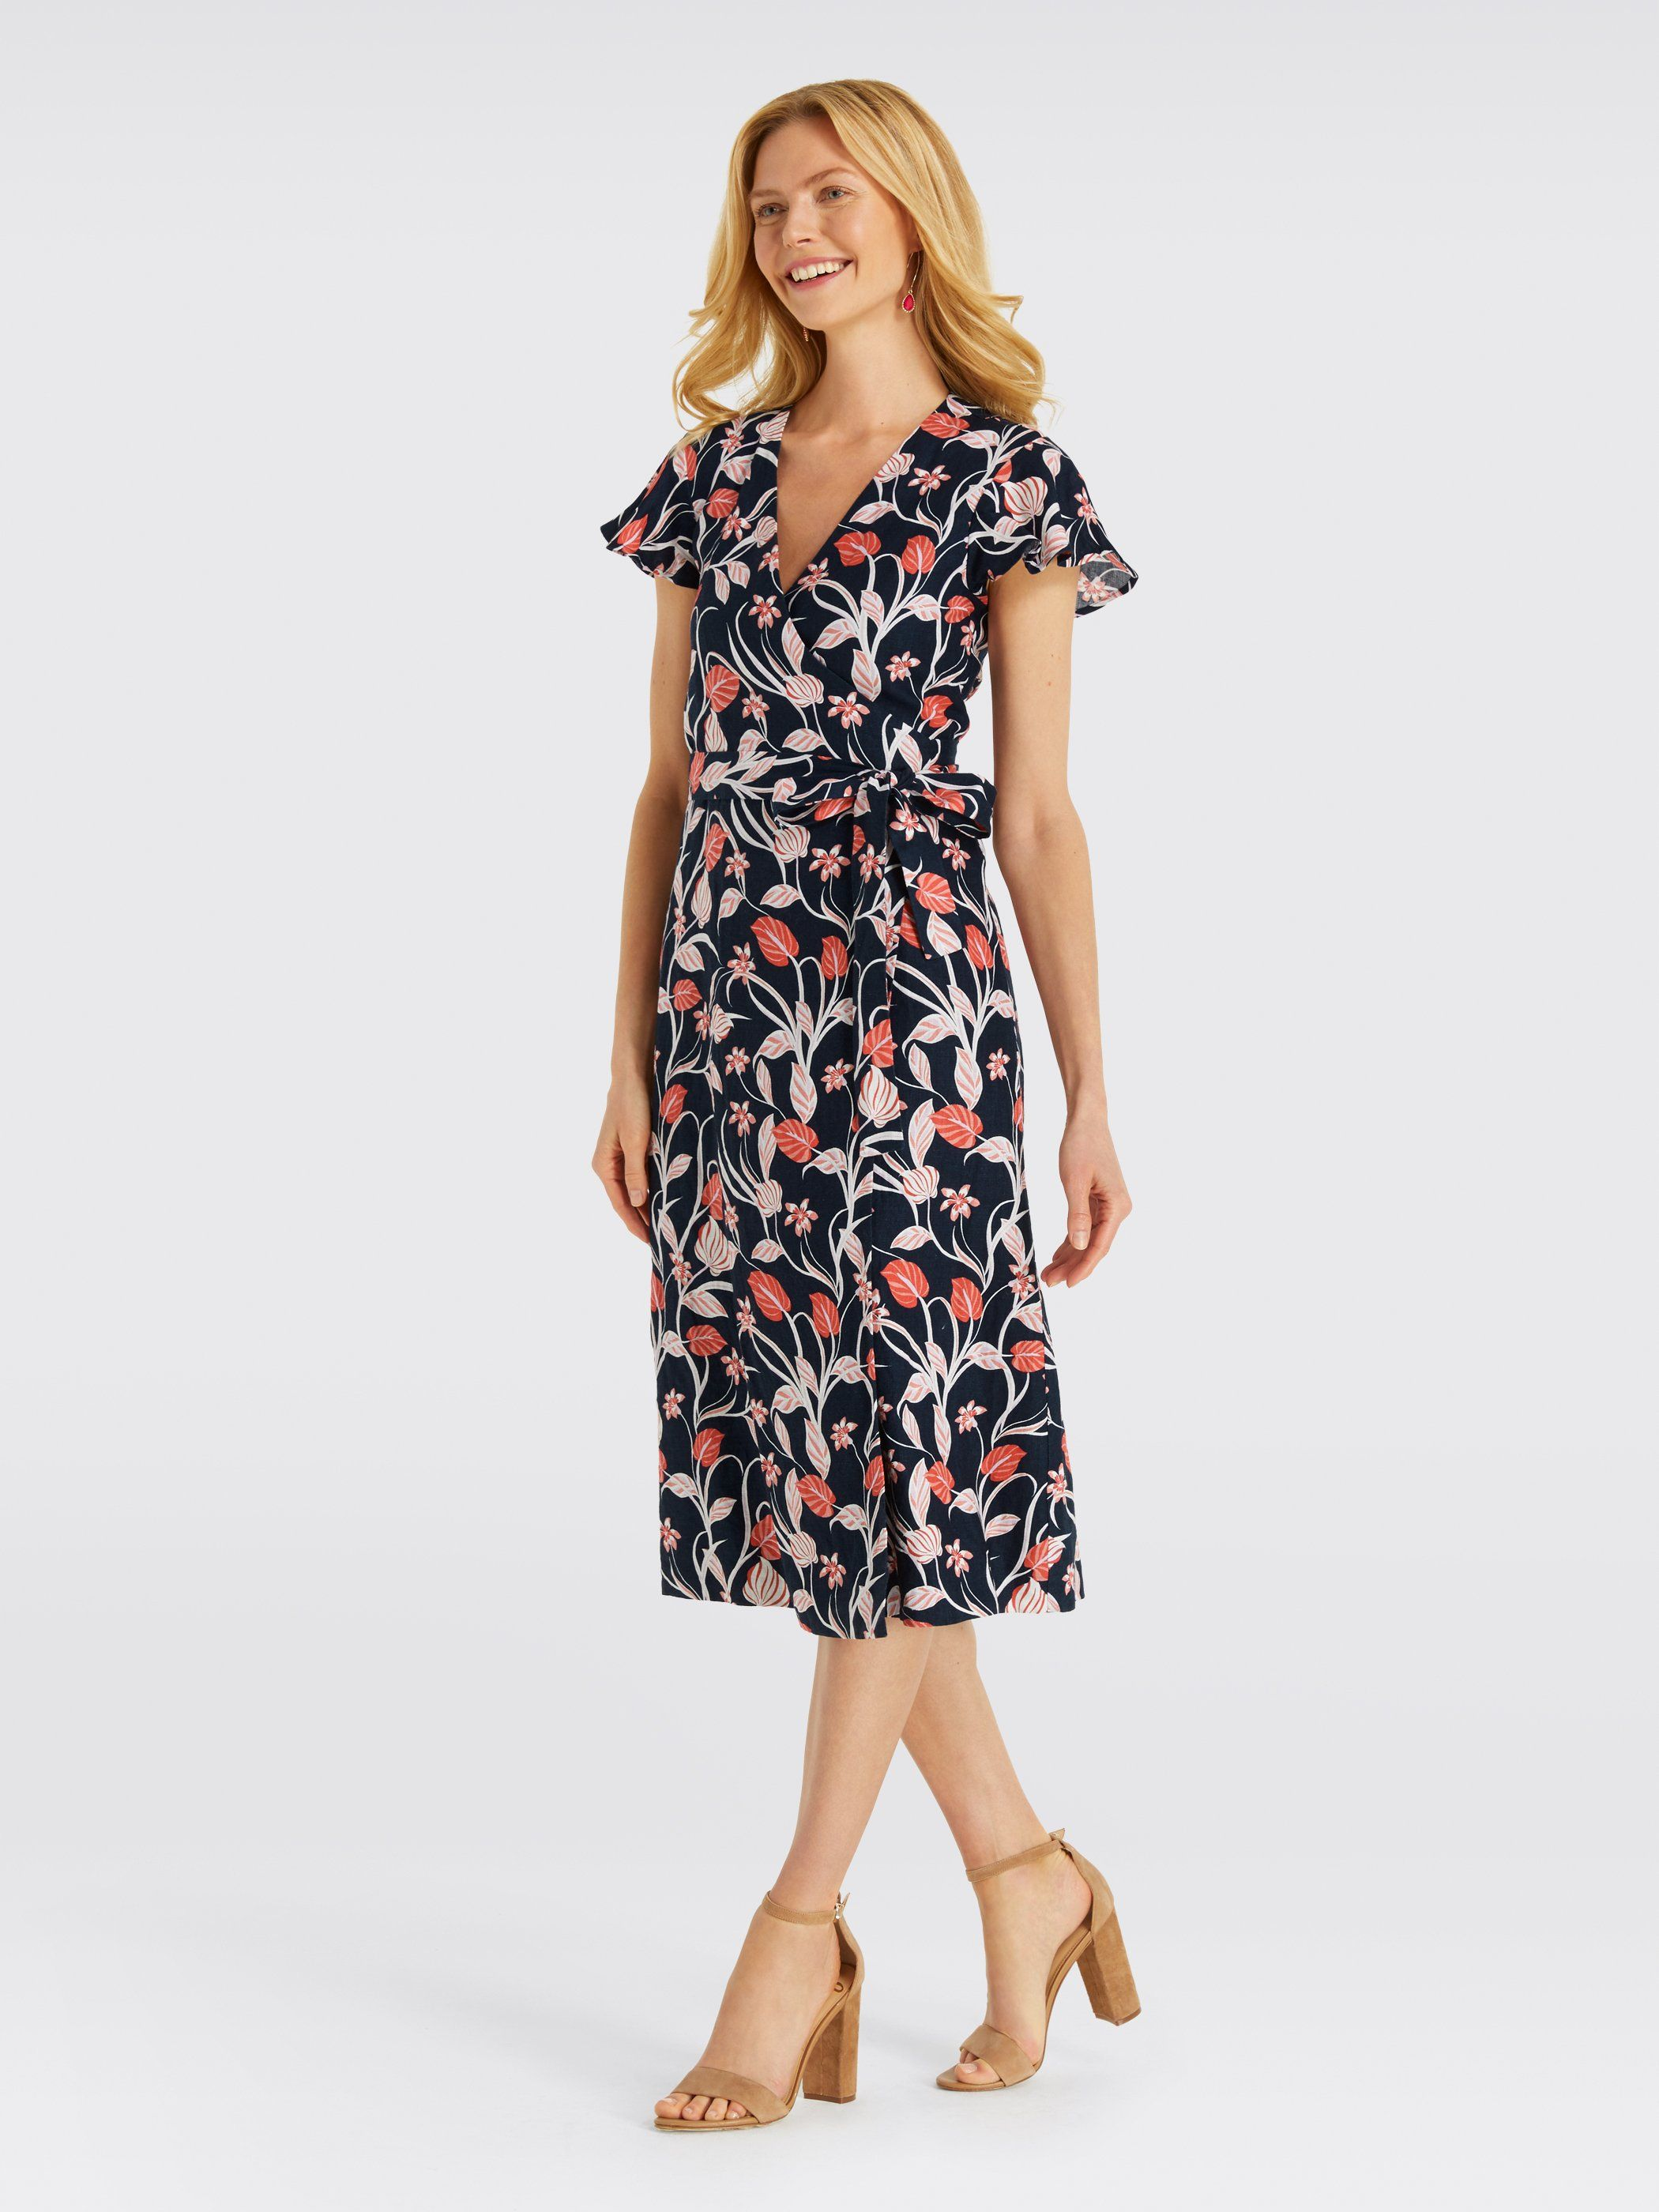 86c130030aaa 10 Womens Easter Dresses 2018 - Cute Dresses for Easter Sunday